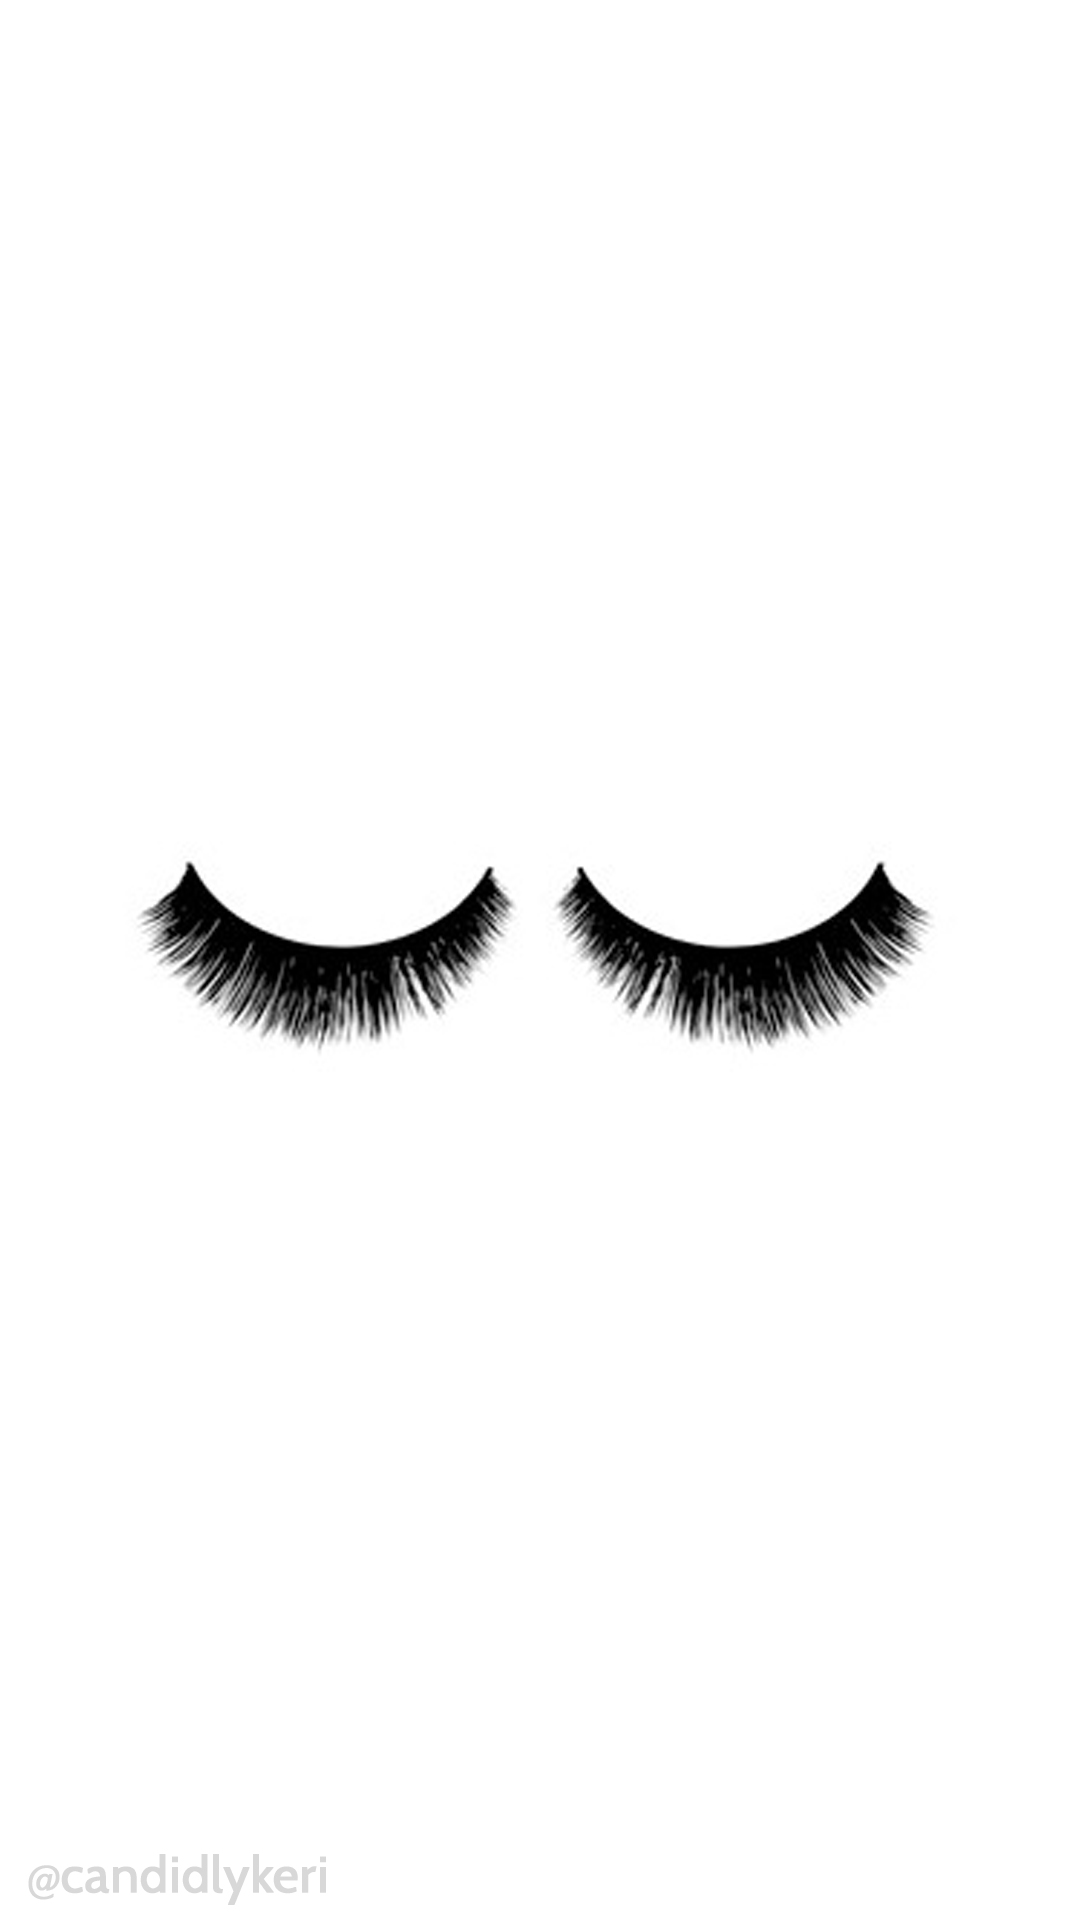 Eyelashes-Fake-lashes-sleepy-background-you-can-download-for-free-on-the-blog-For-any-dev-wallpaper-wp3805123